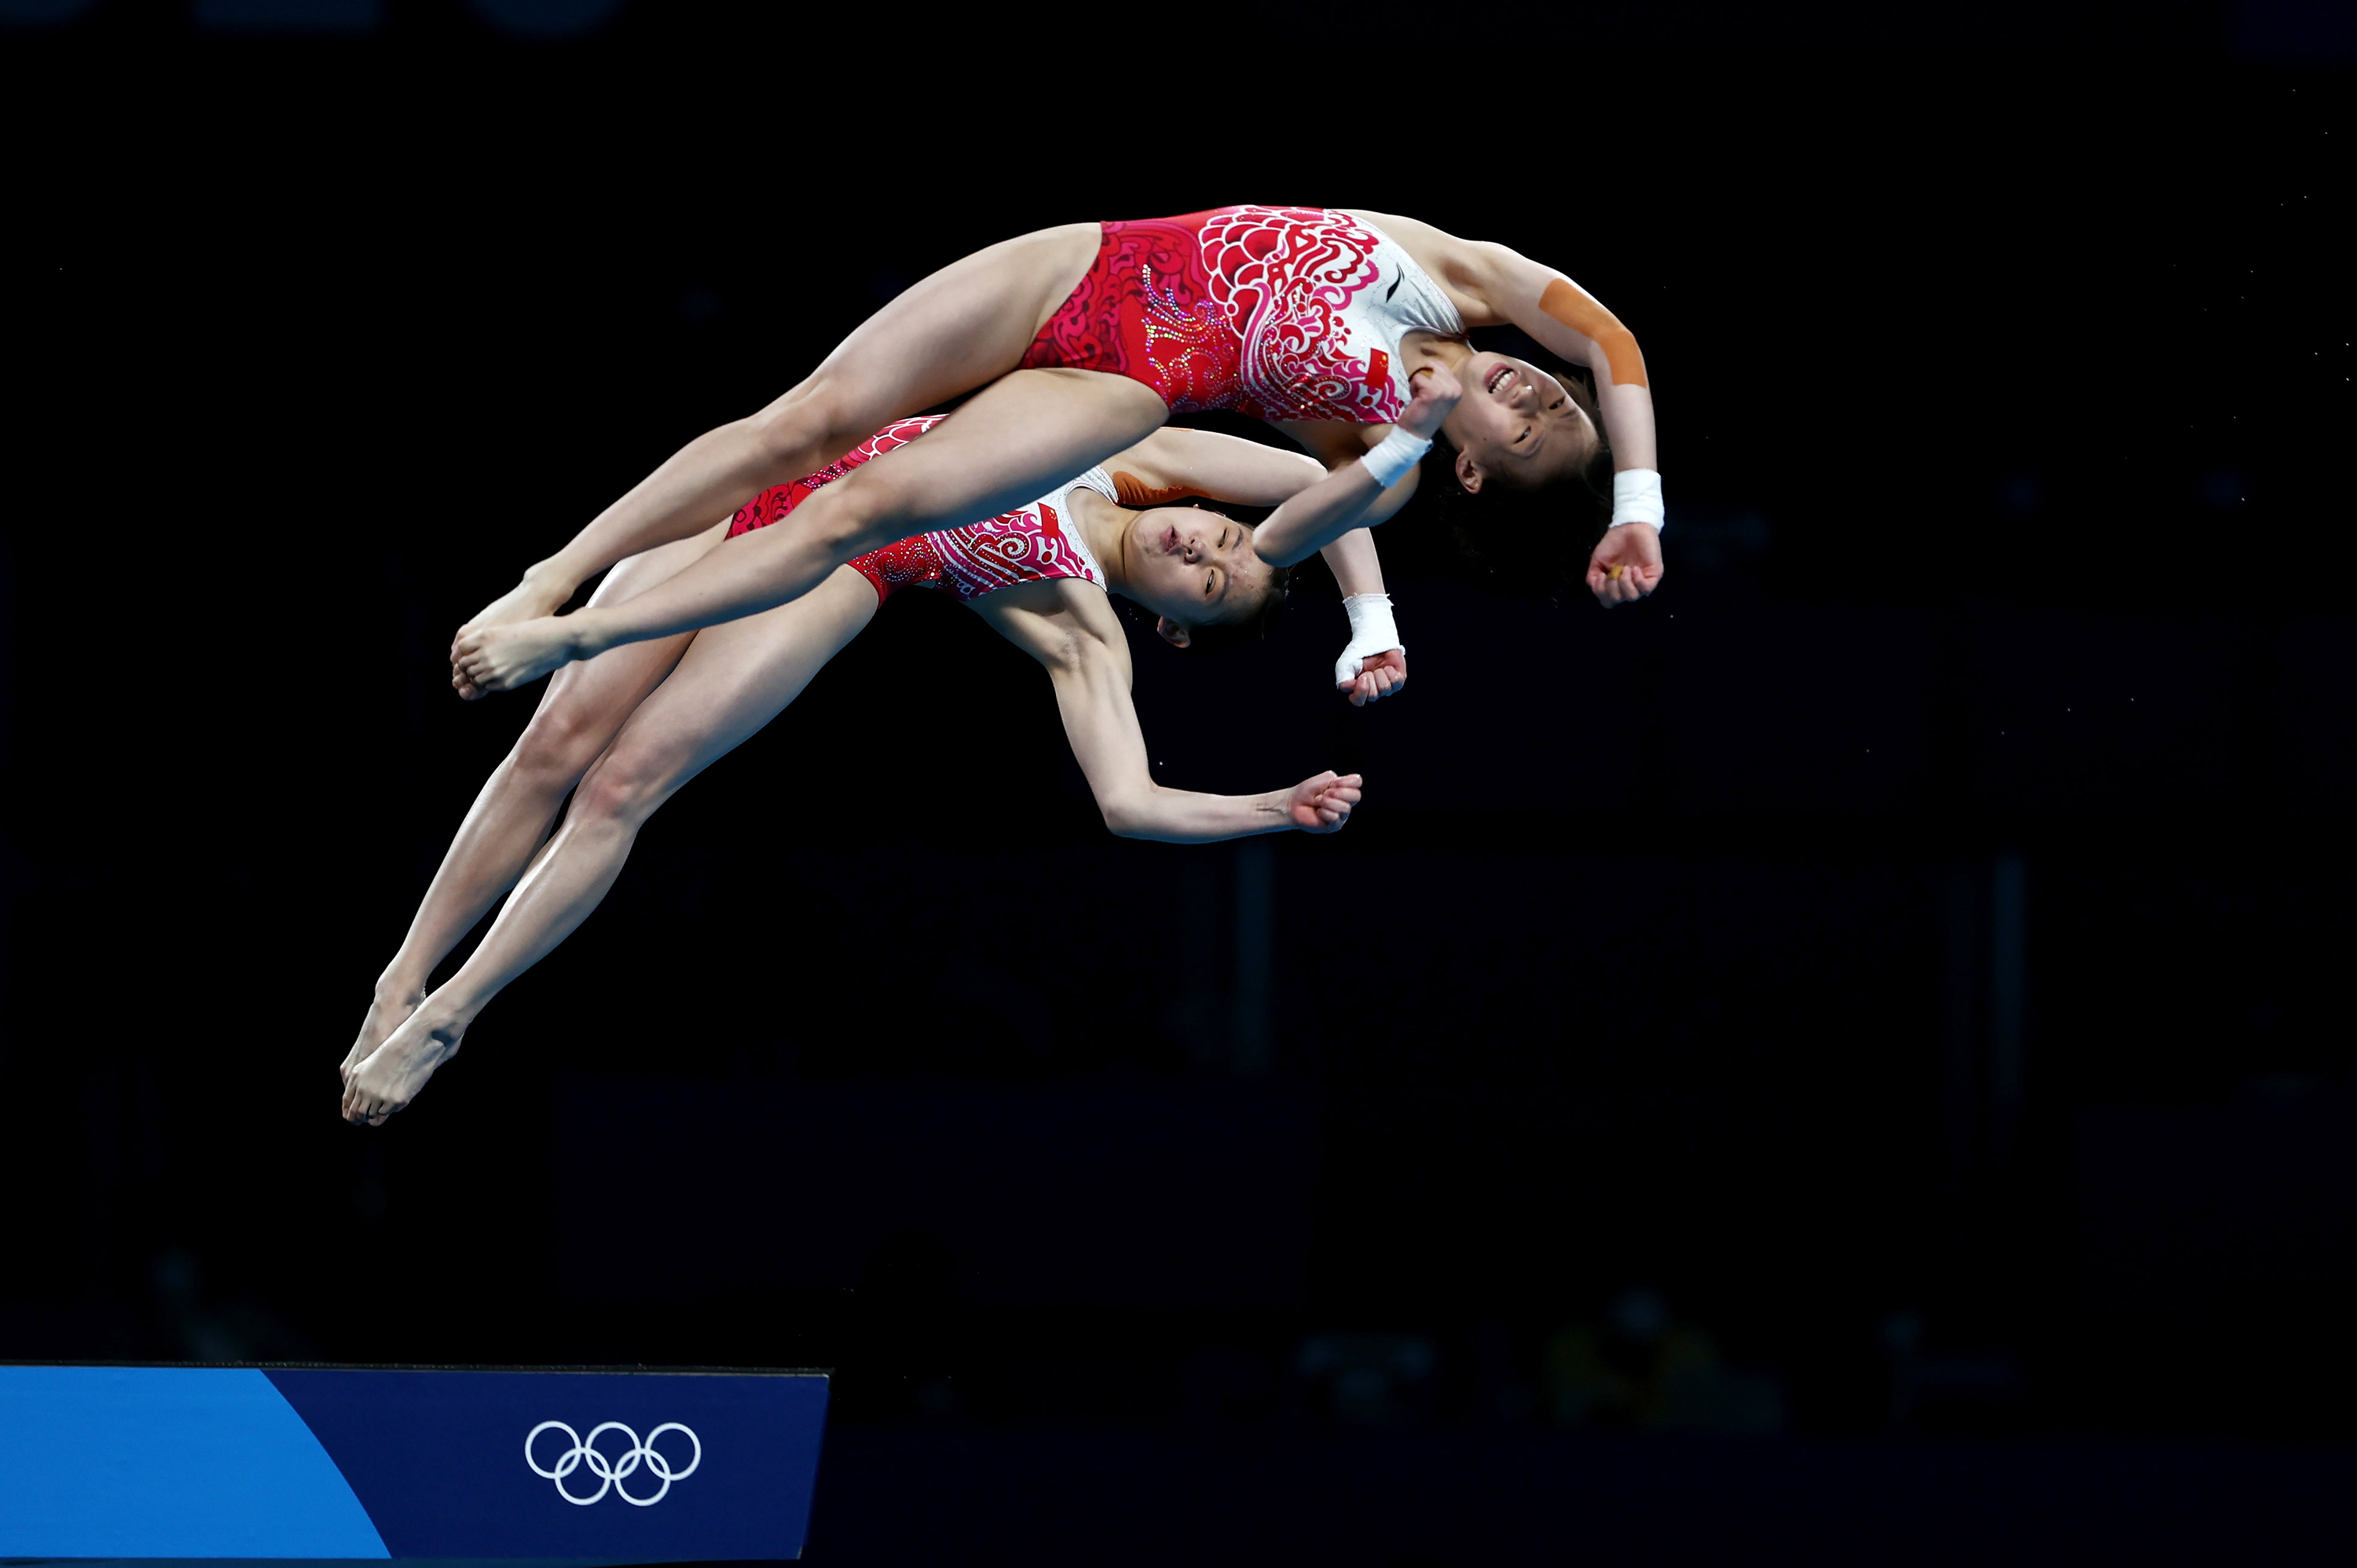 China's Chen Yuxi and Zhang Jiaqi compete in the 10m synchronized platform final on Tuesday, July 27.